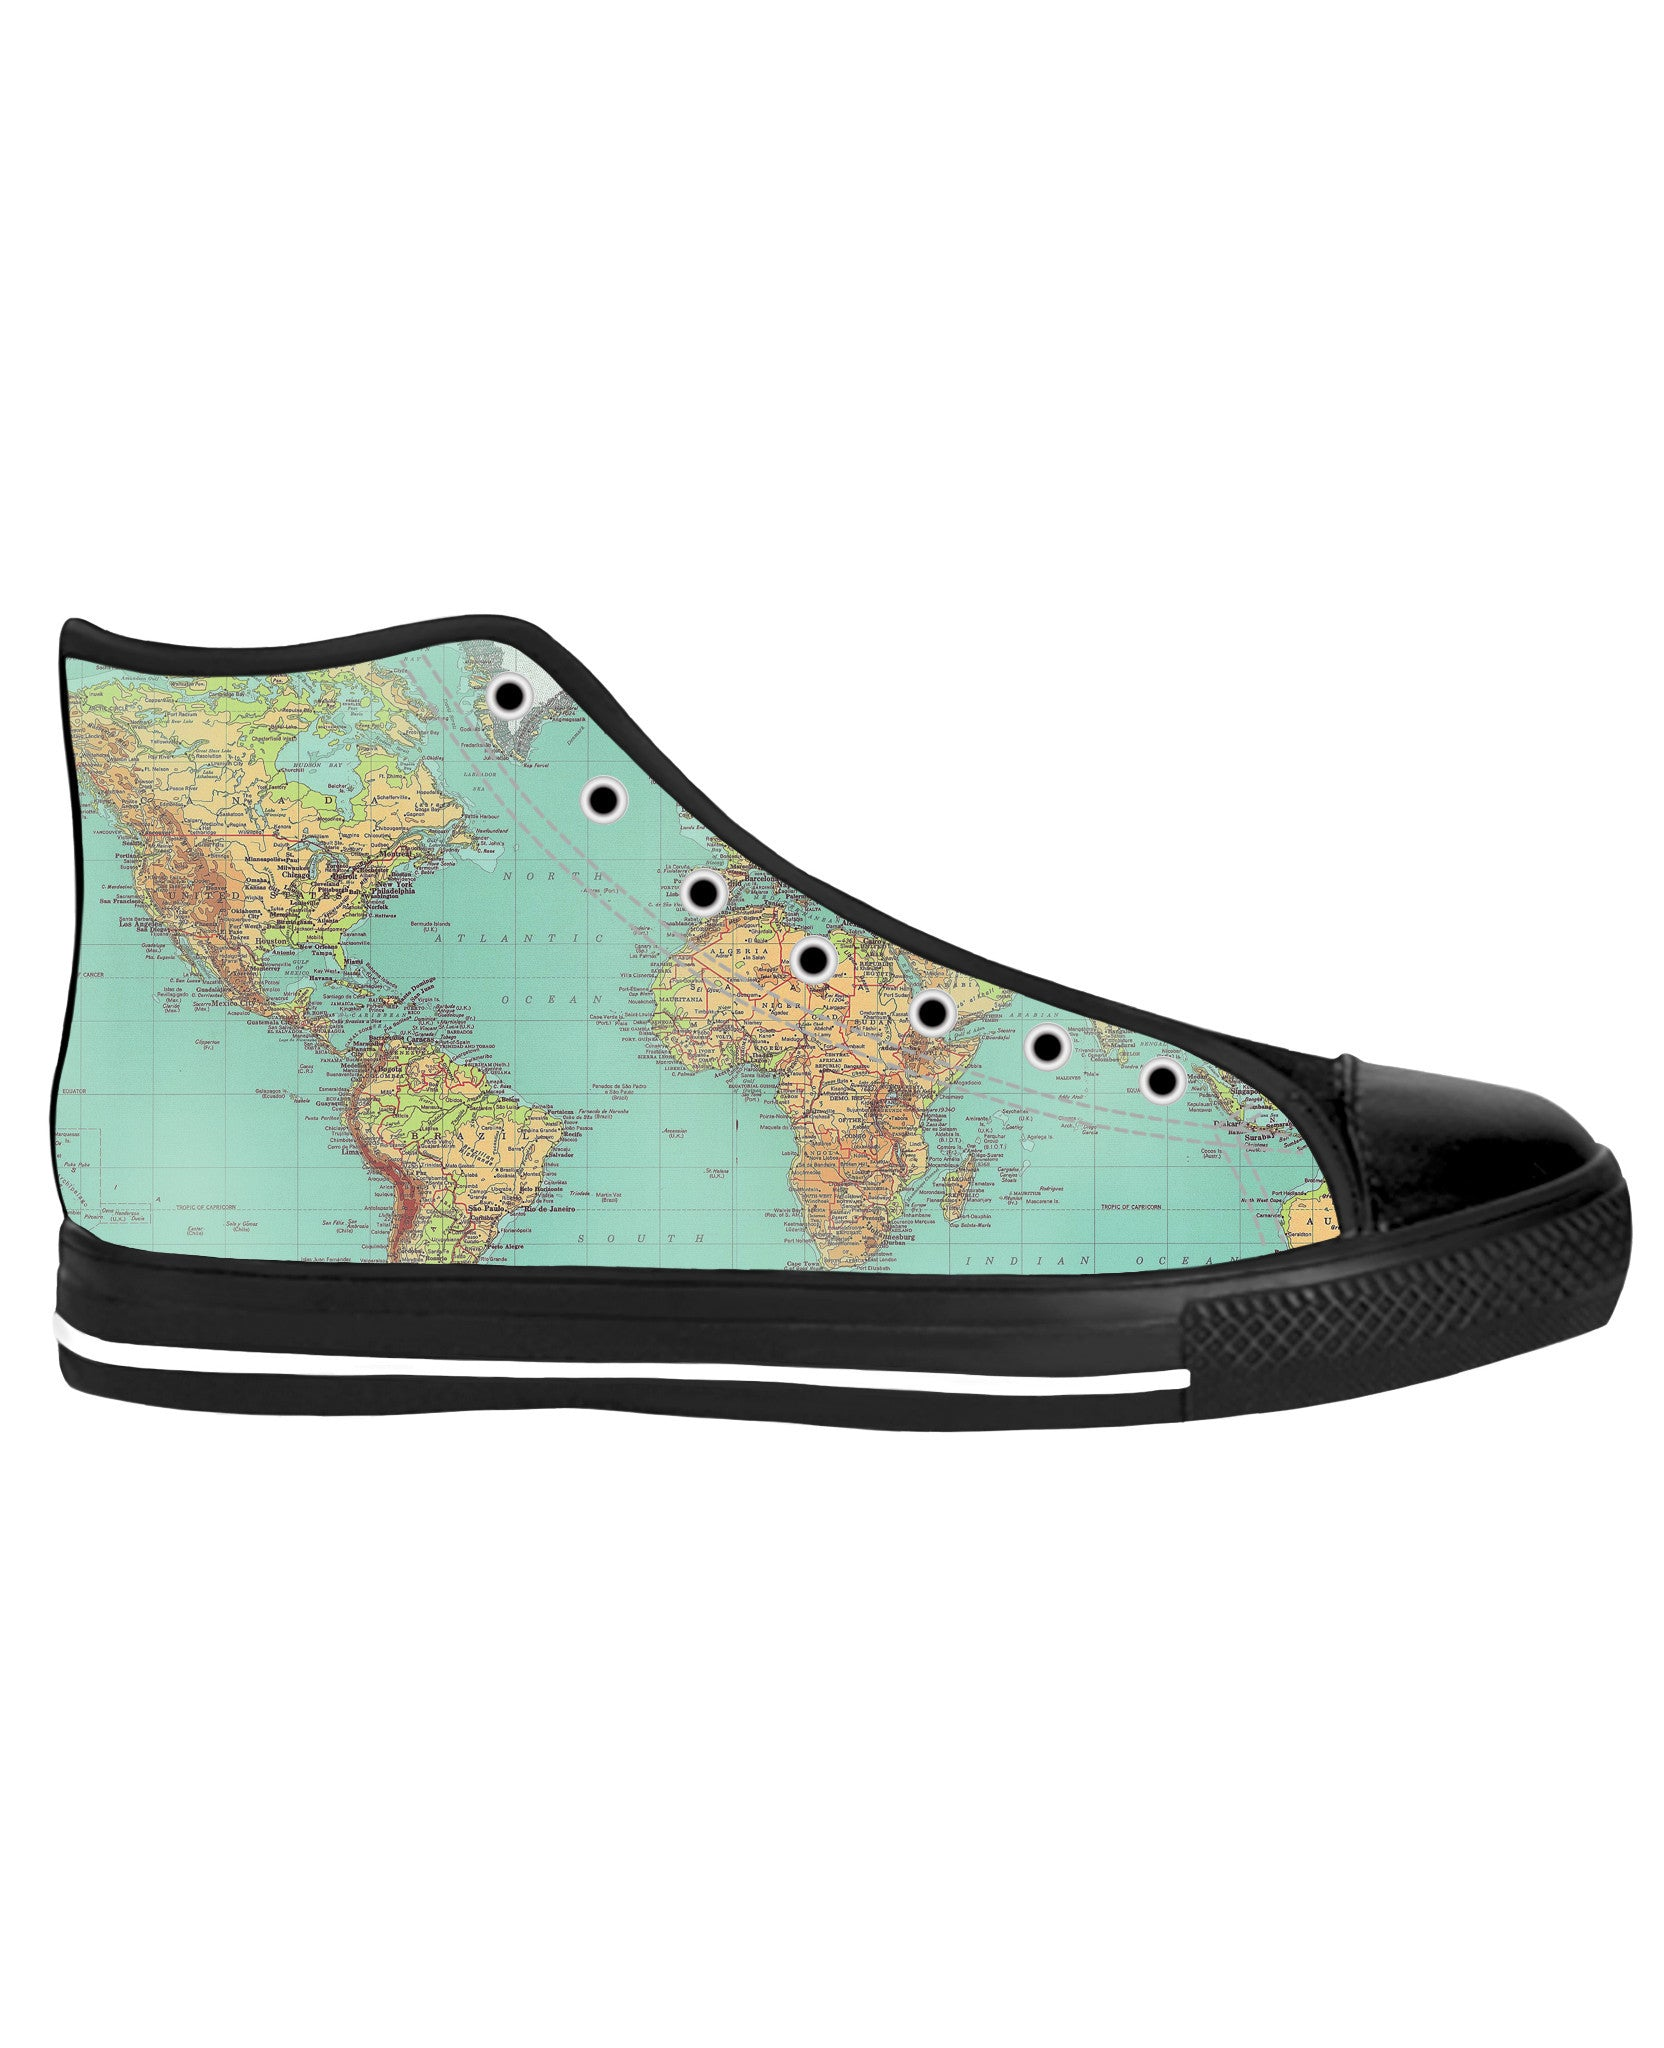 Map Black Sole High Tops